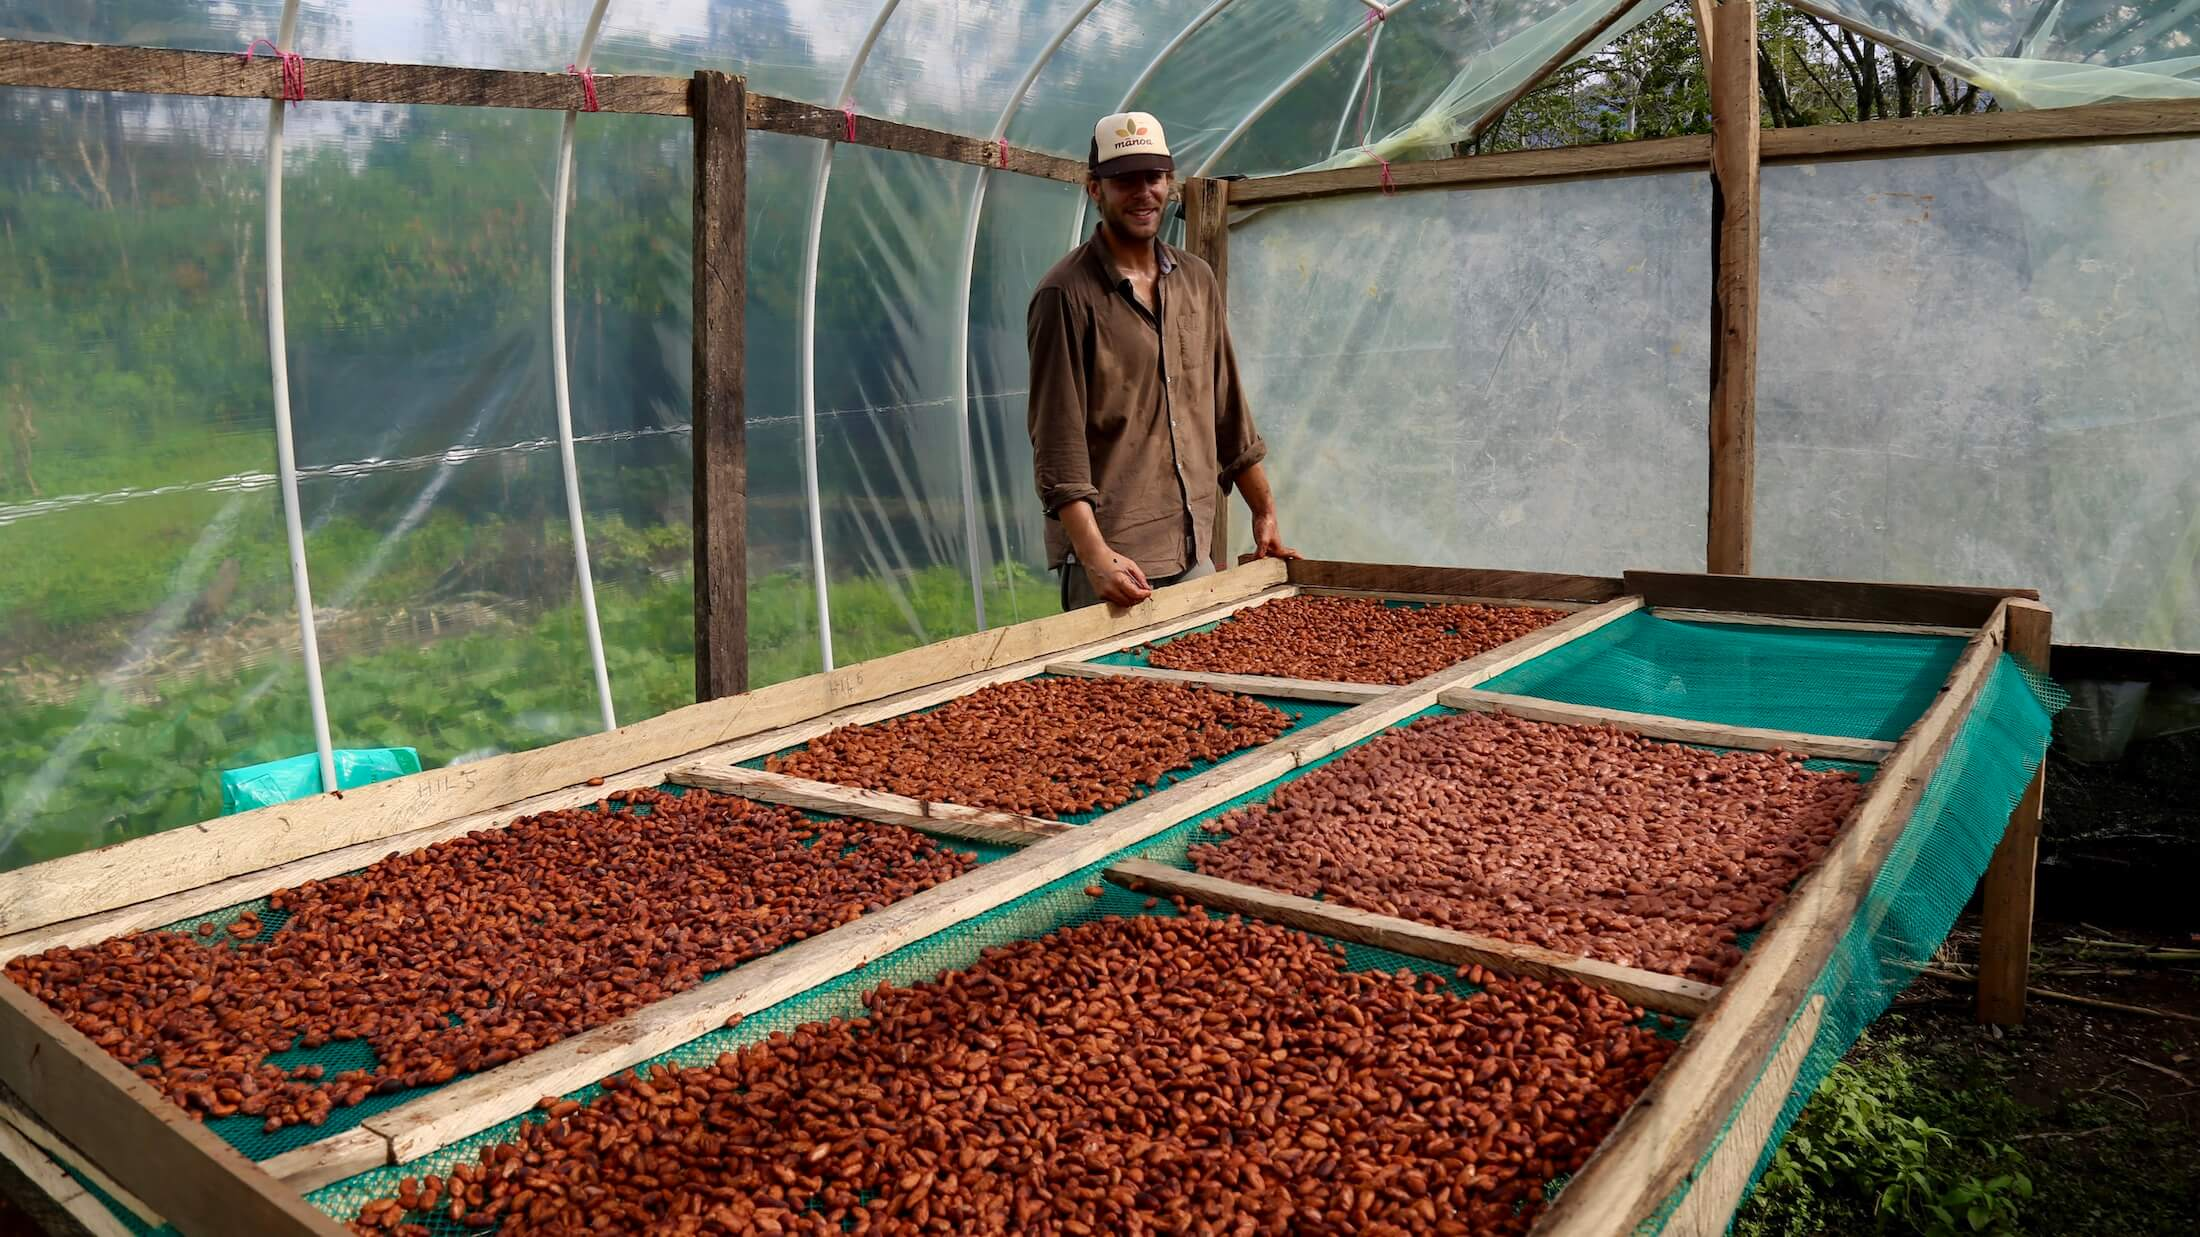 drying cacao with manoa chocolate